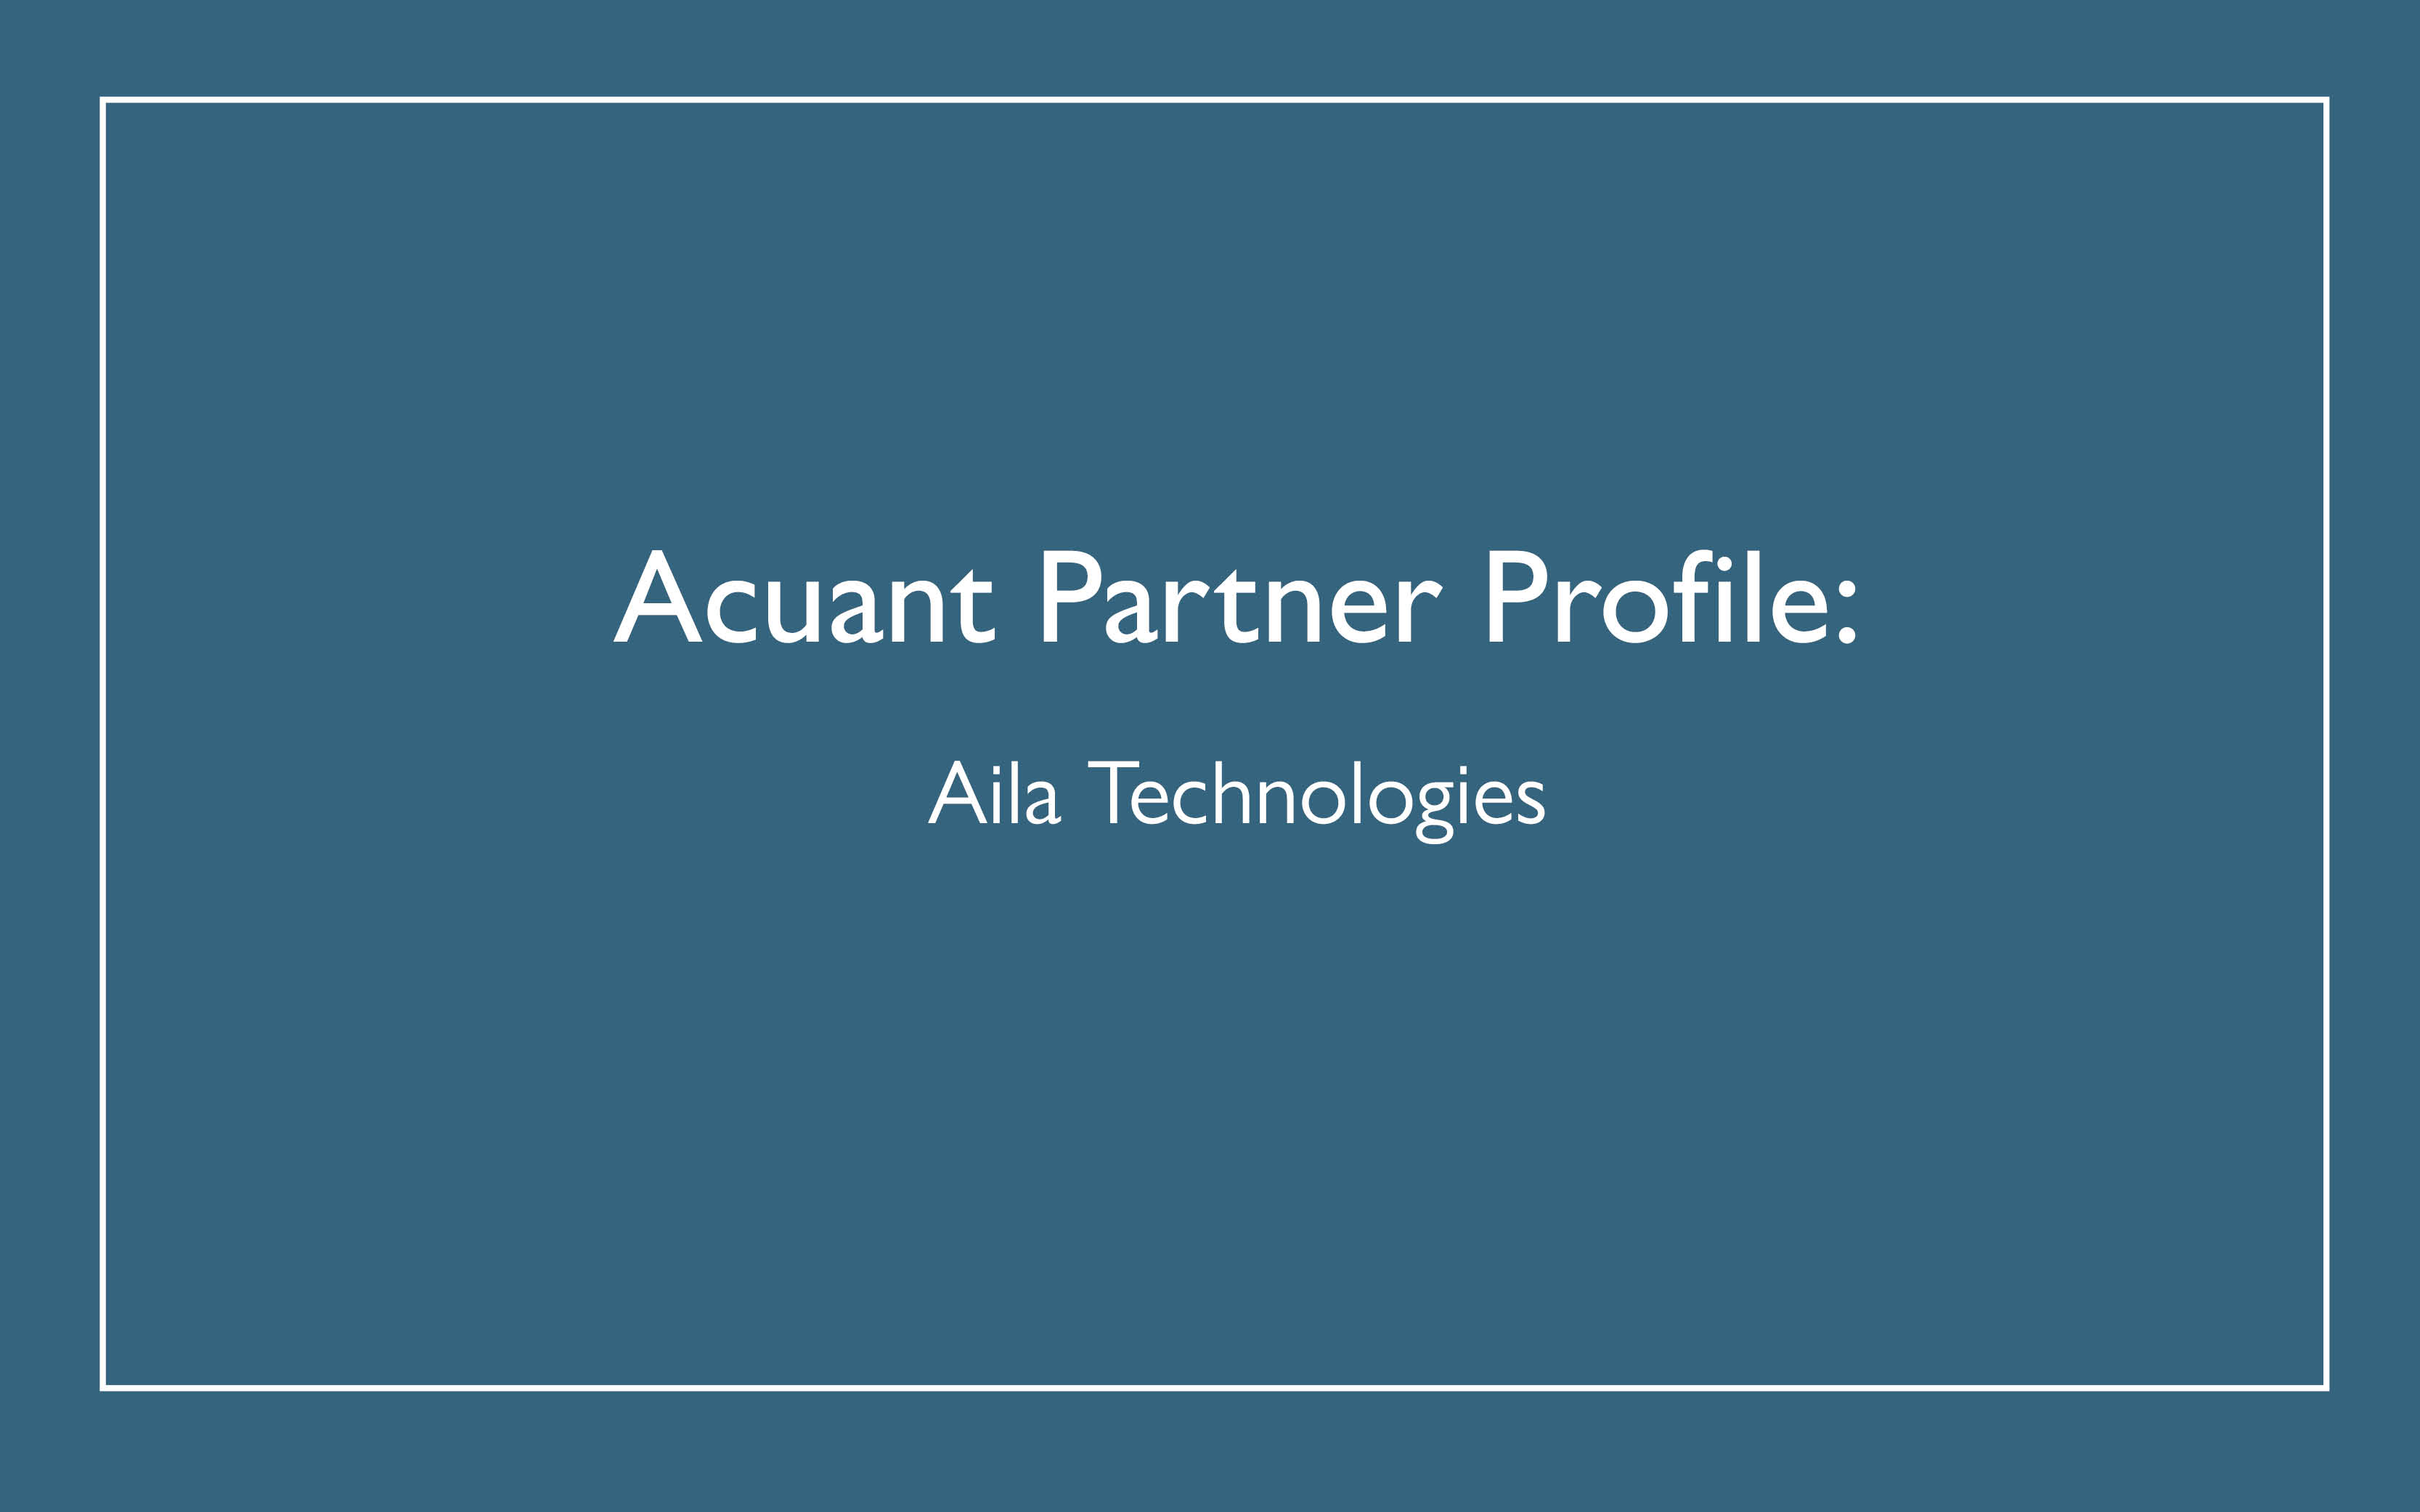 Acuant Partner Profile Aila Technologies